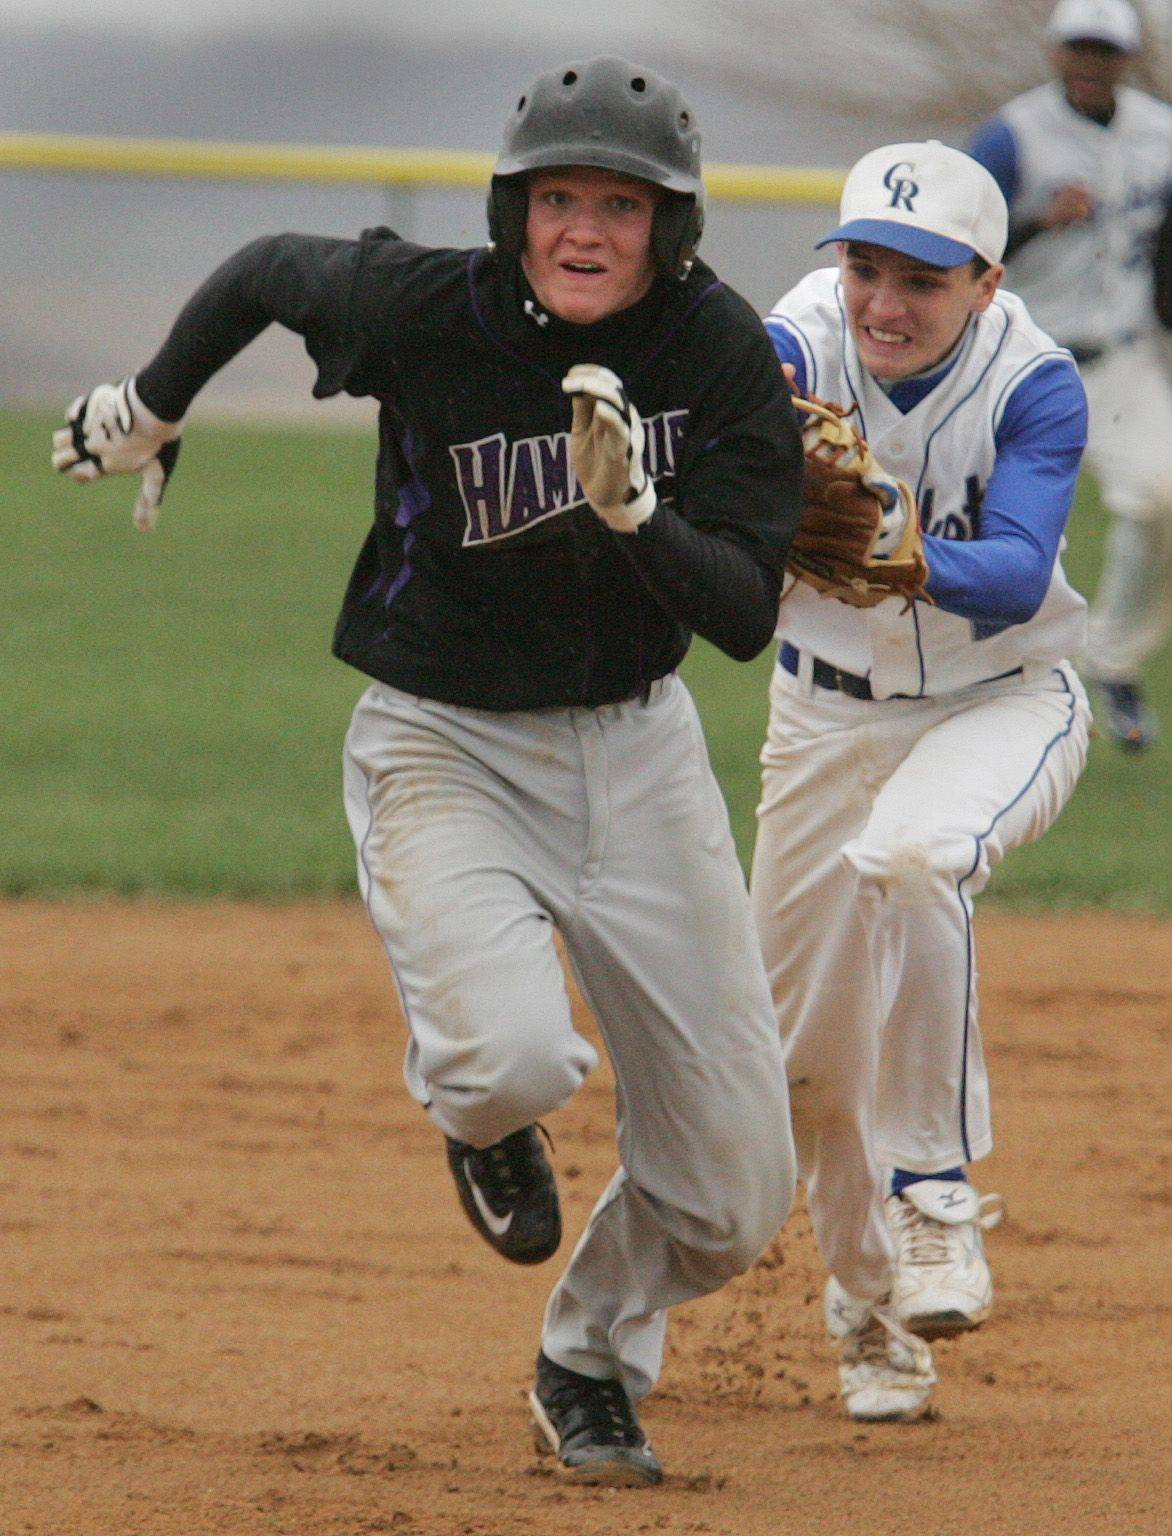 Burlington Central's Brian Leist chases down Hampshire base runner Chase Lundry for the out between second and third base.